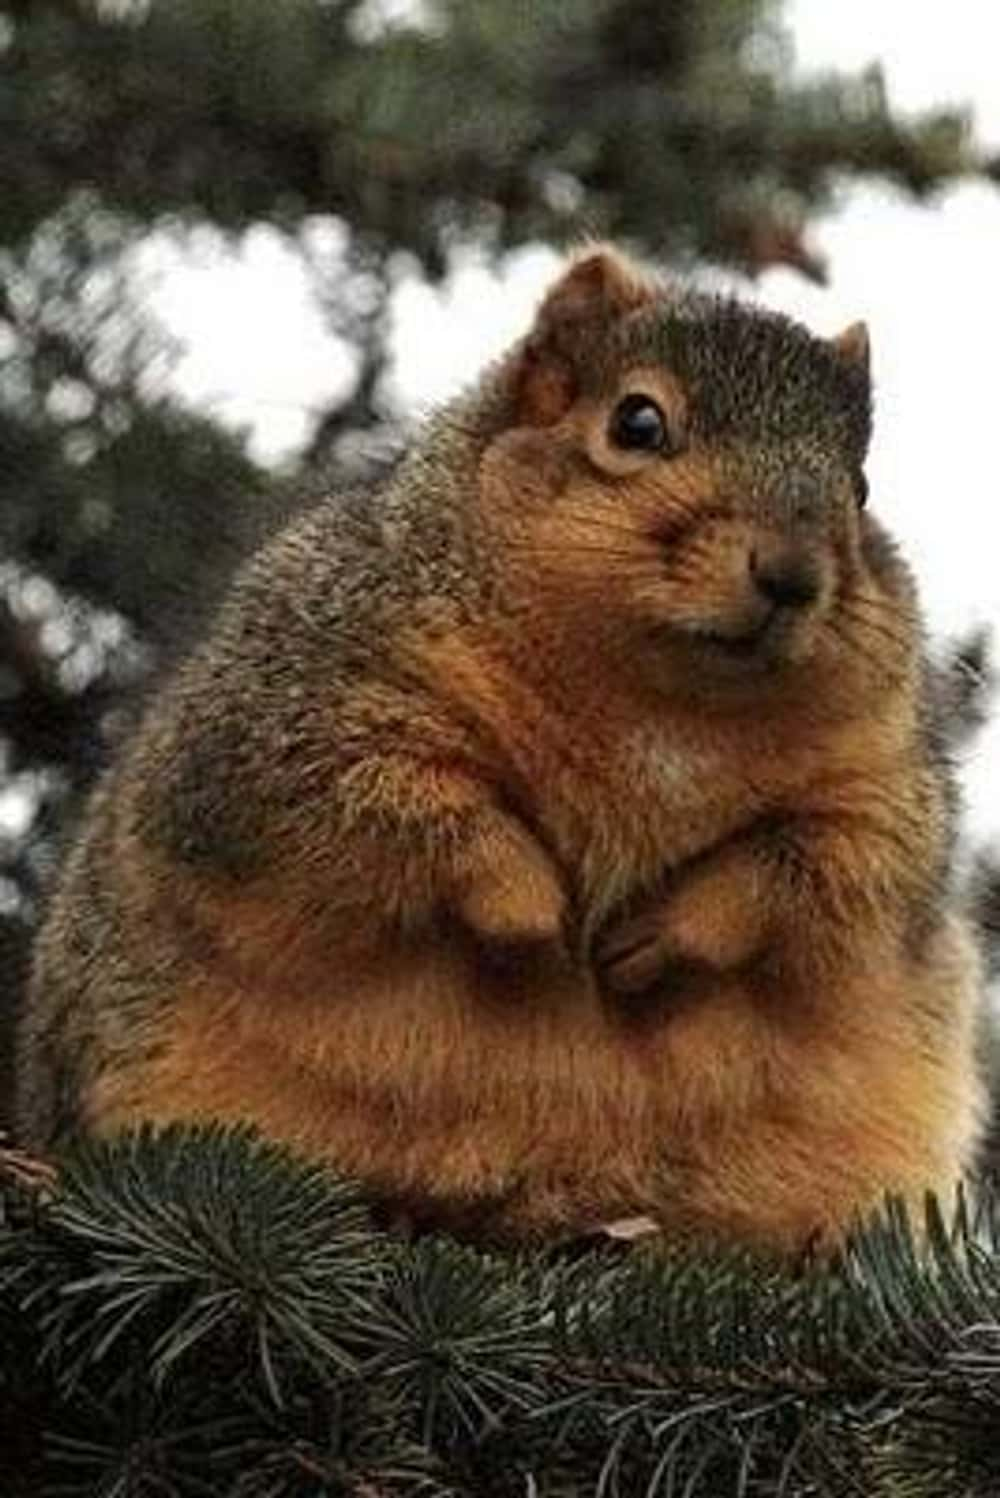 Big Squirrel is listed (or ranked) 1 on the list The 51 Fattest Animals in Internet History